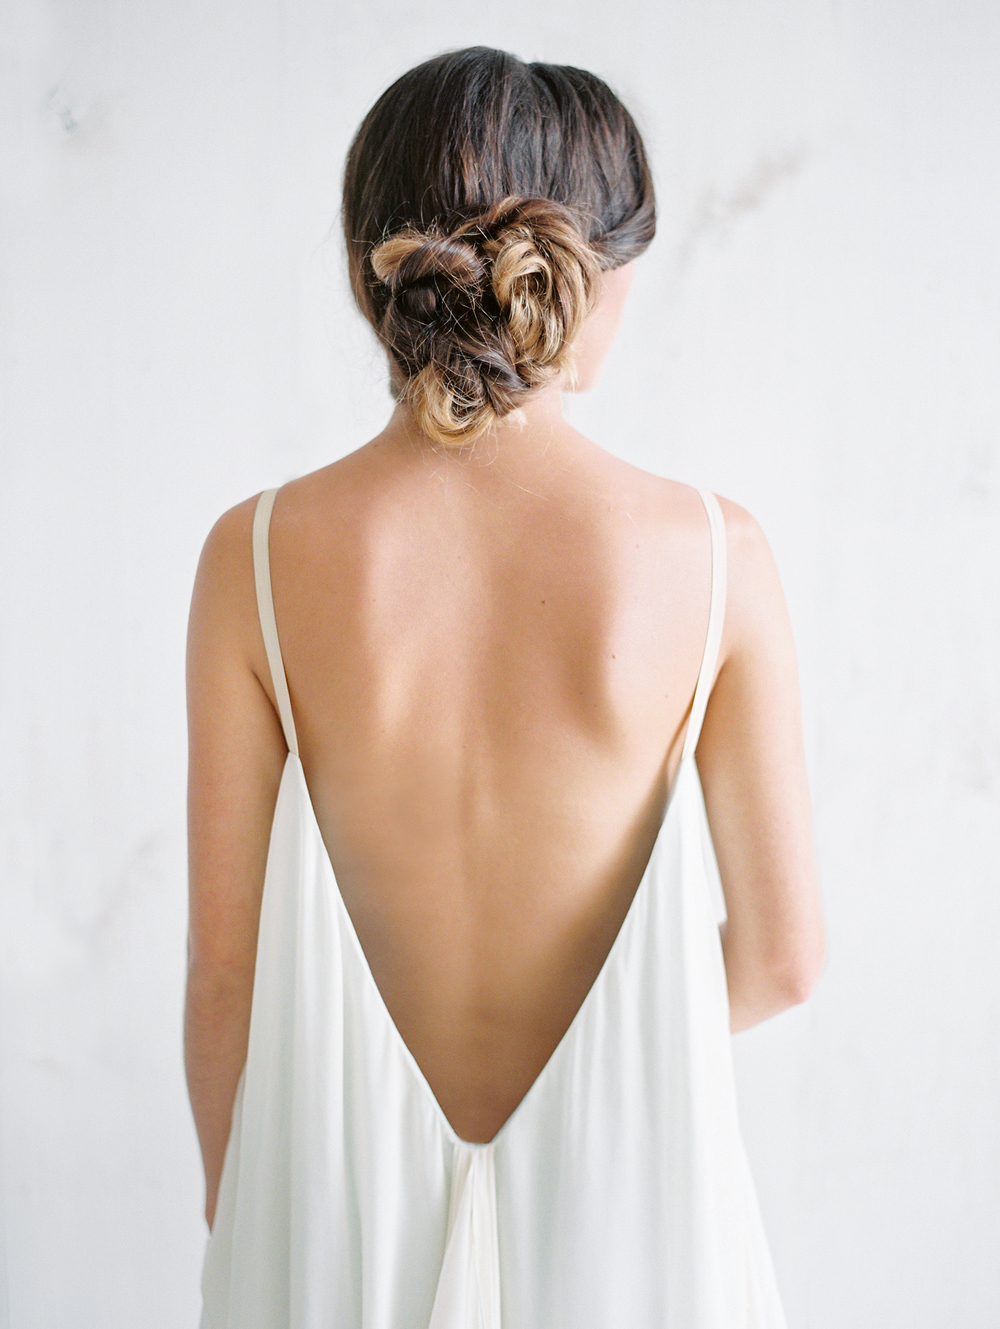 Organic Simplicity Wedding Inspiration - Lindsey Brunk